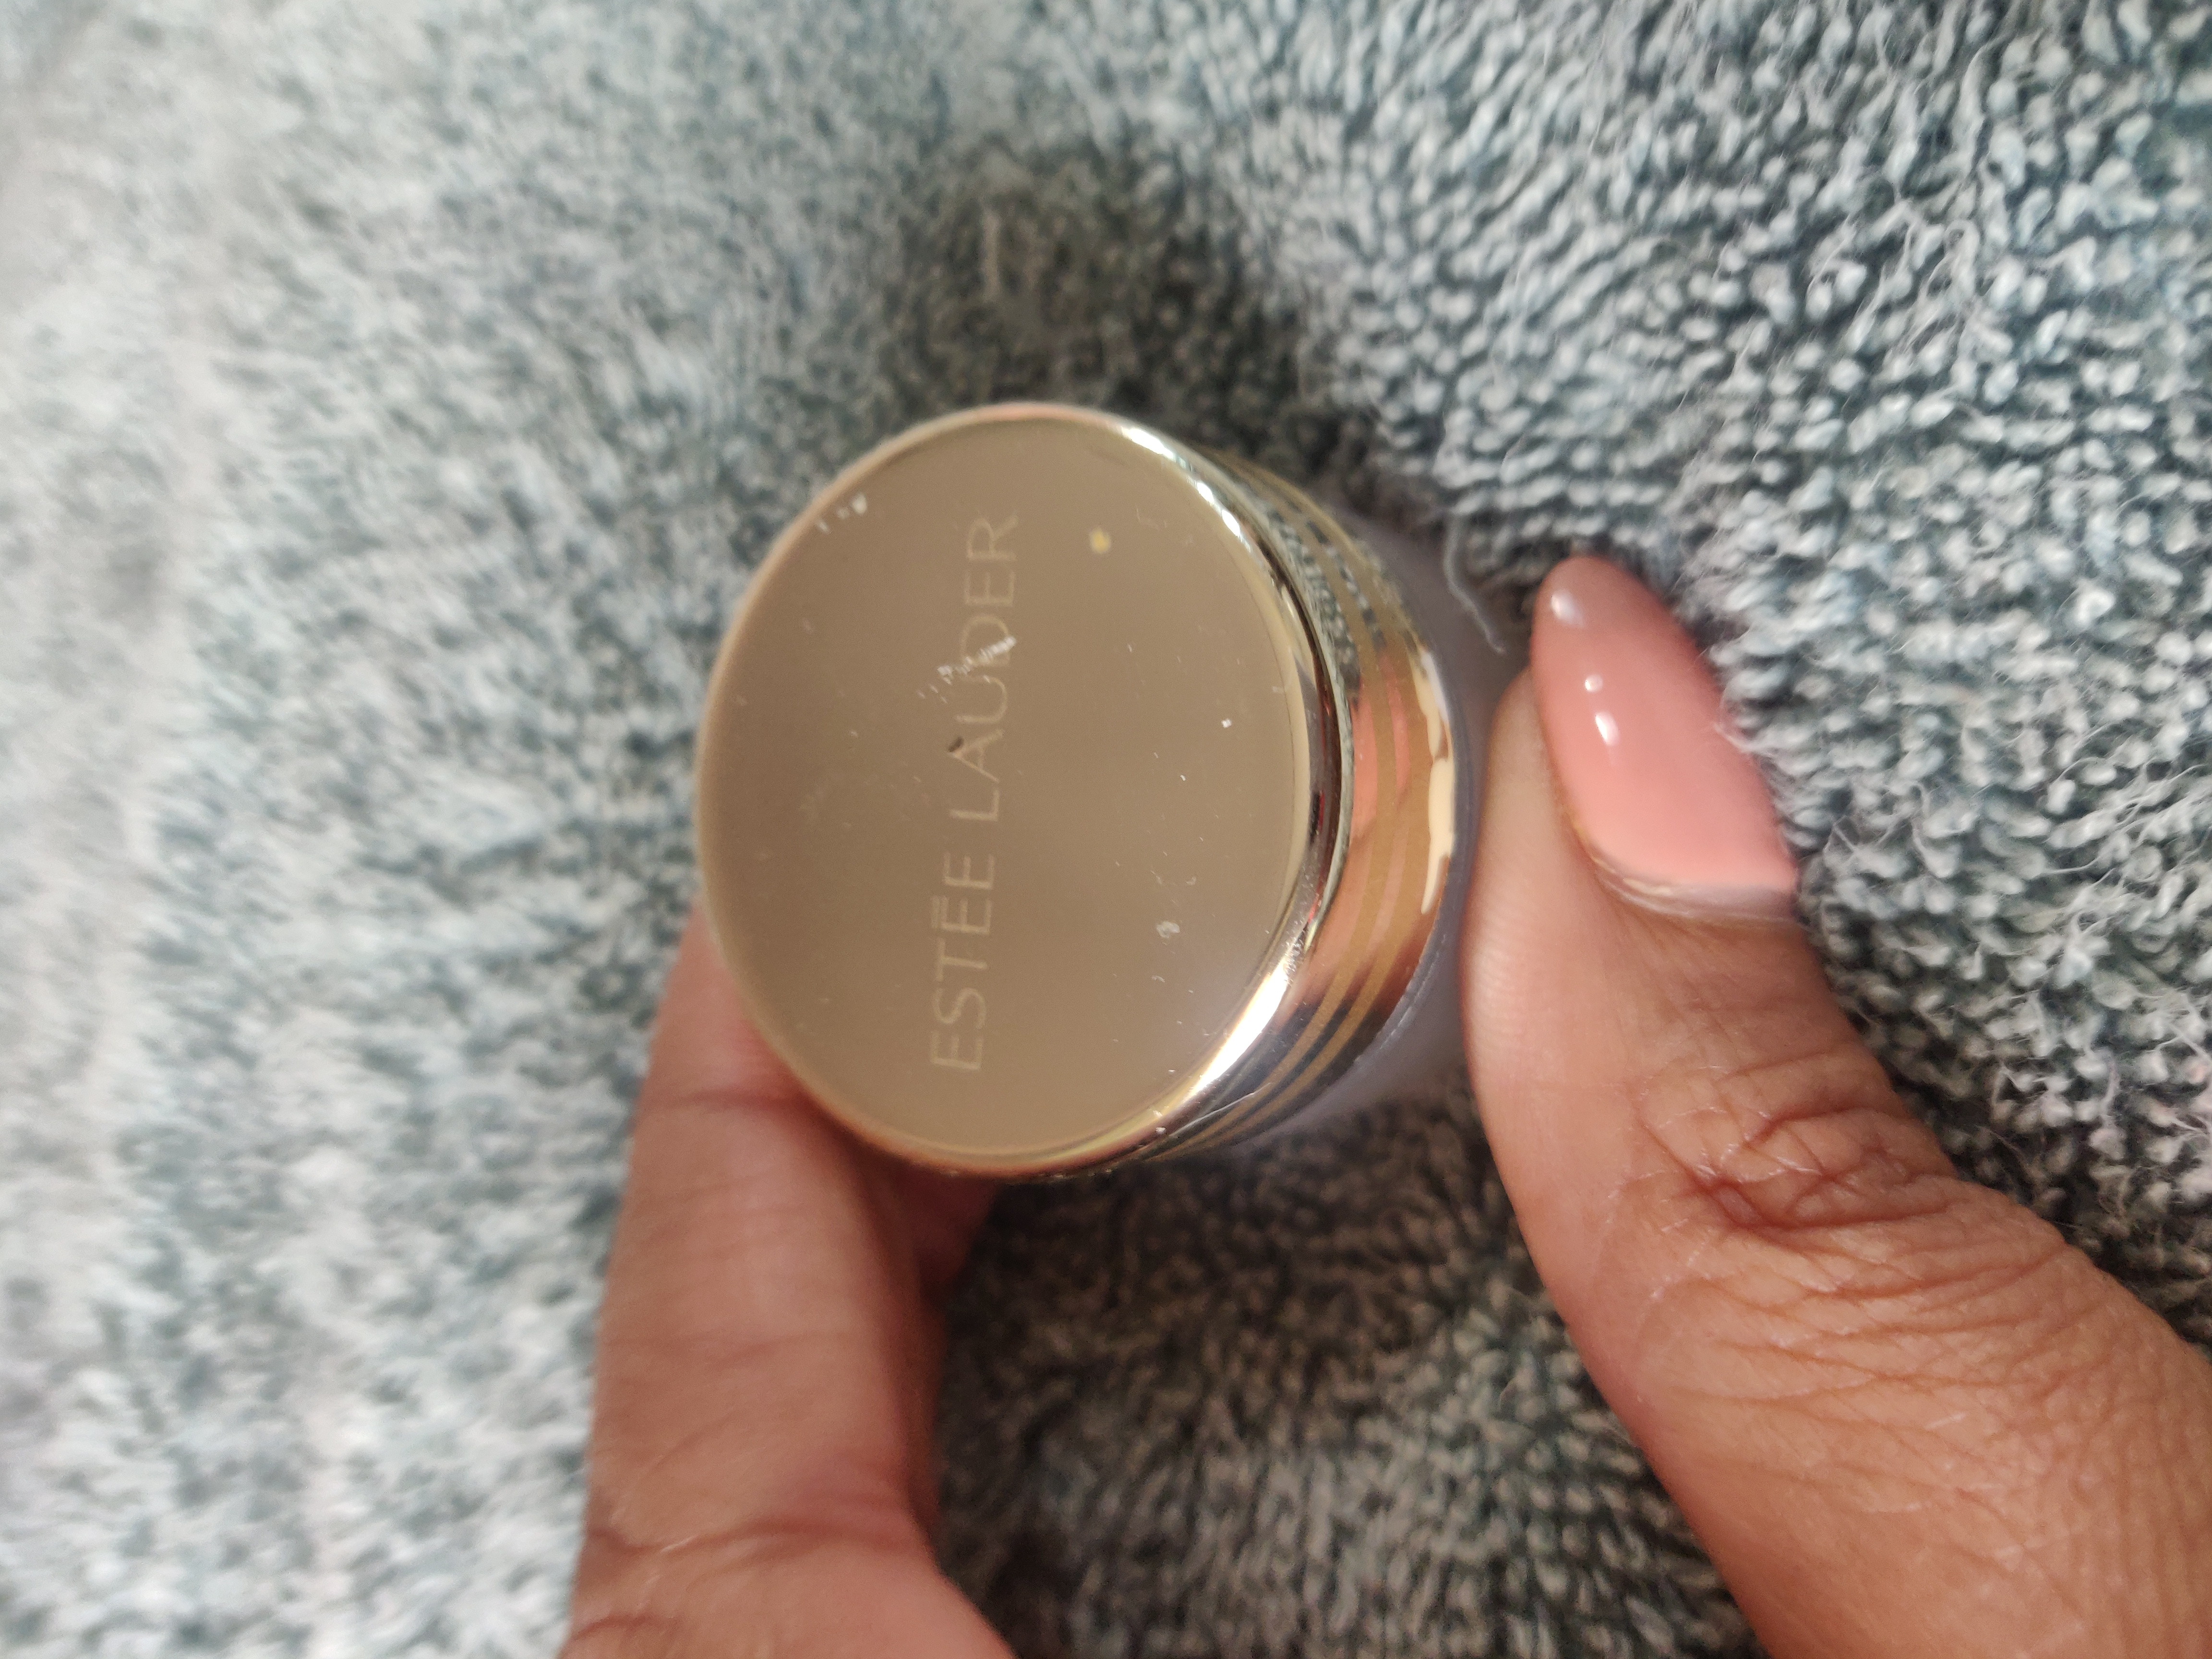 Estee Lauder Advanced Night Micro Cleansing Balm-Cleanse to sleep with El advanced night-By apekshap